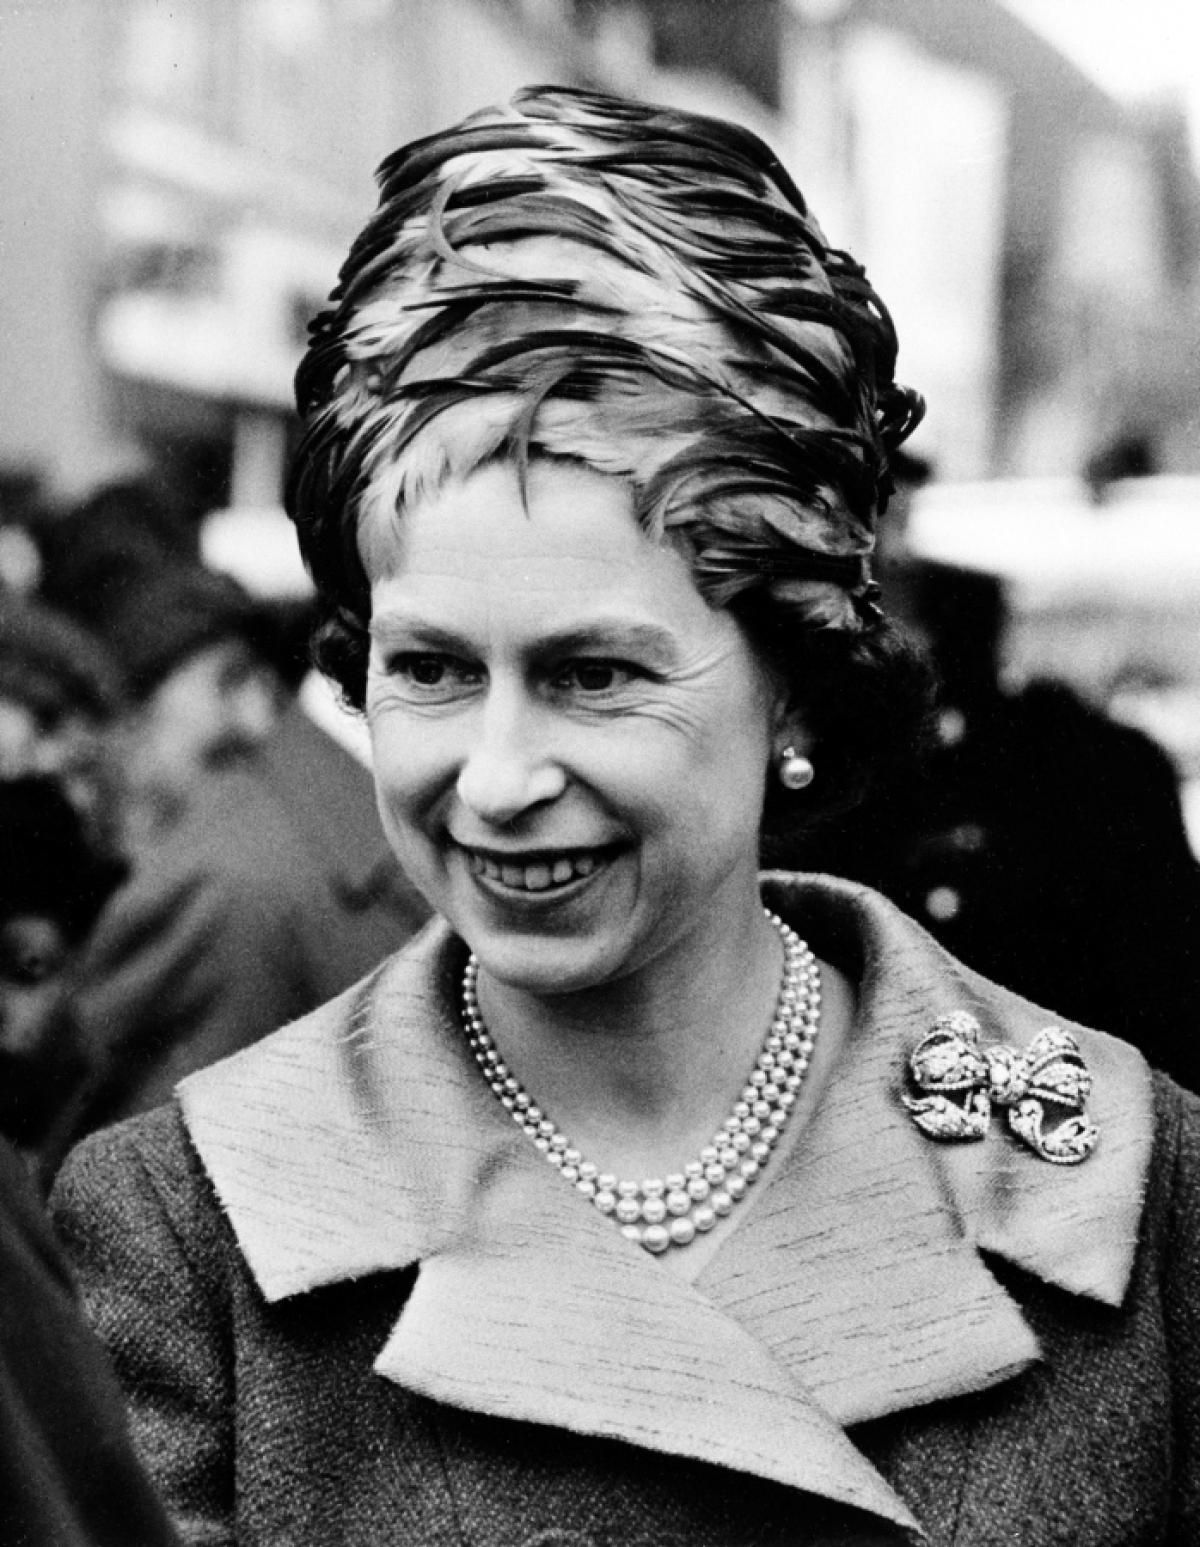 the life and reign of queen elizabeth ii The formal proclamation of elizabeth's reign as her majesty queen elizabeth ii was held on feb 8 1952, two days after her father's death.